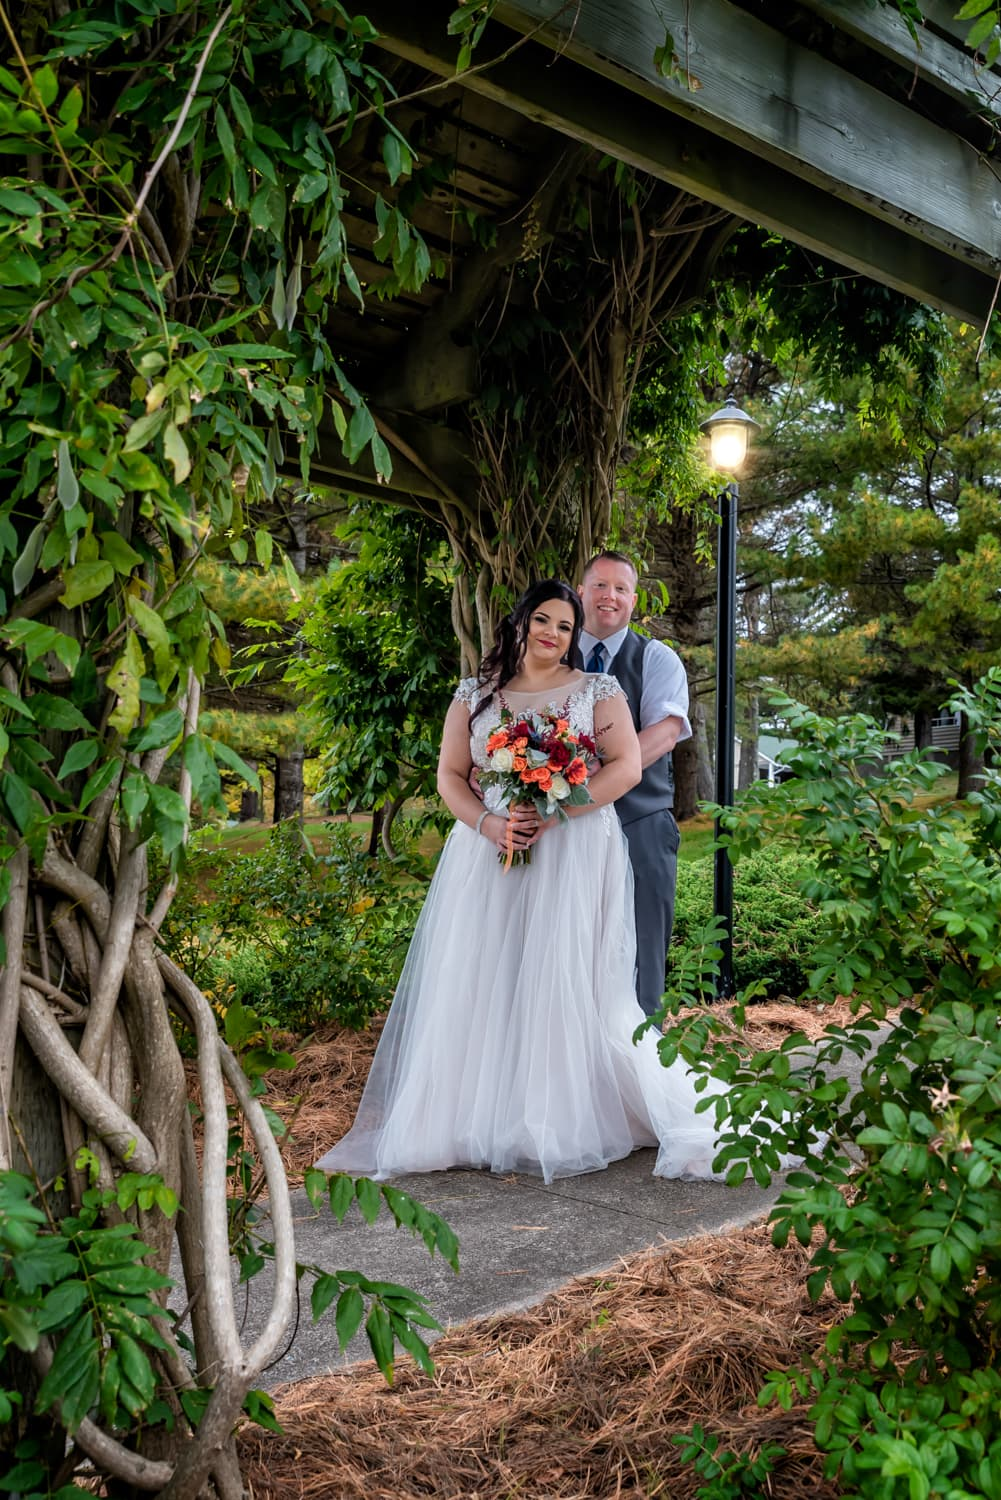 A bride and groom standing under an archway of veins at Digby Pines.